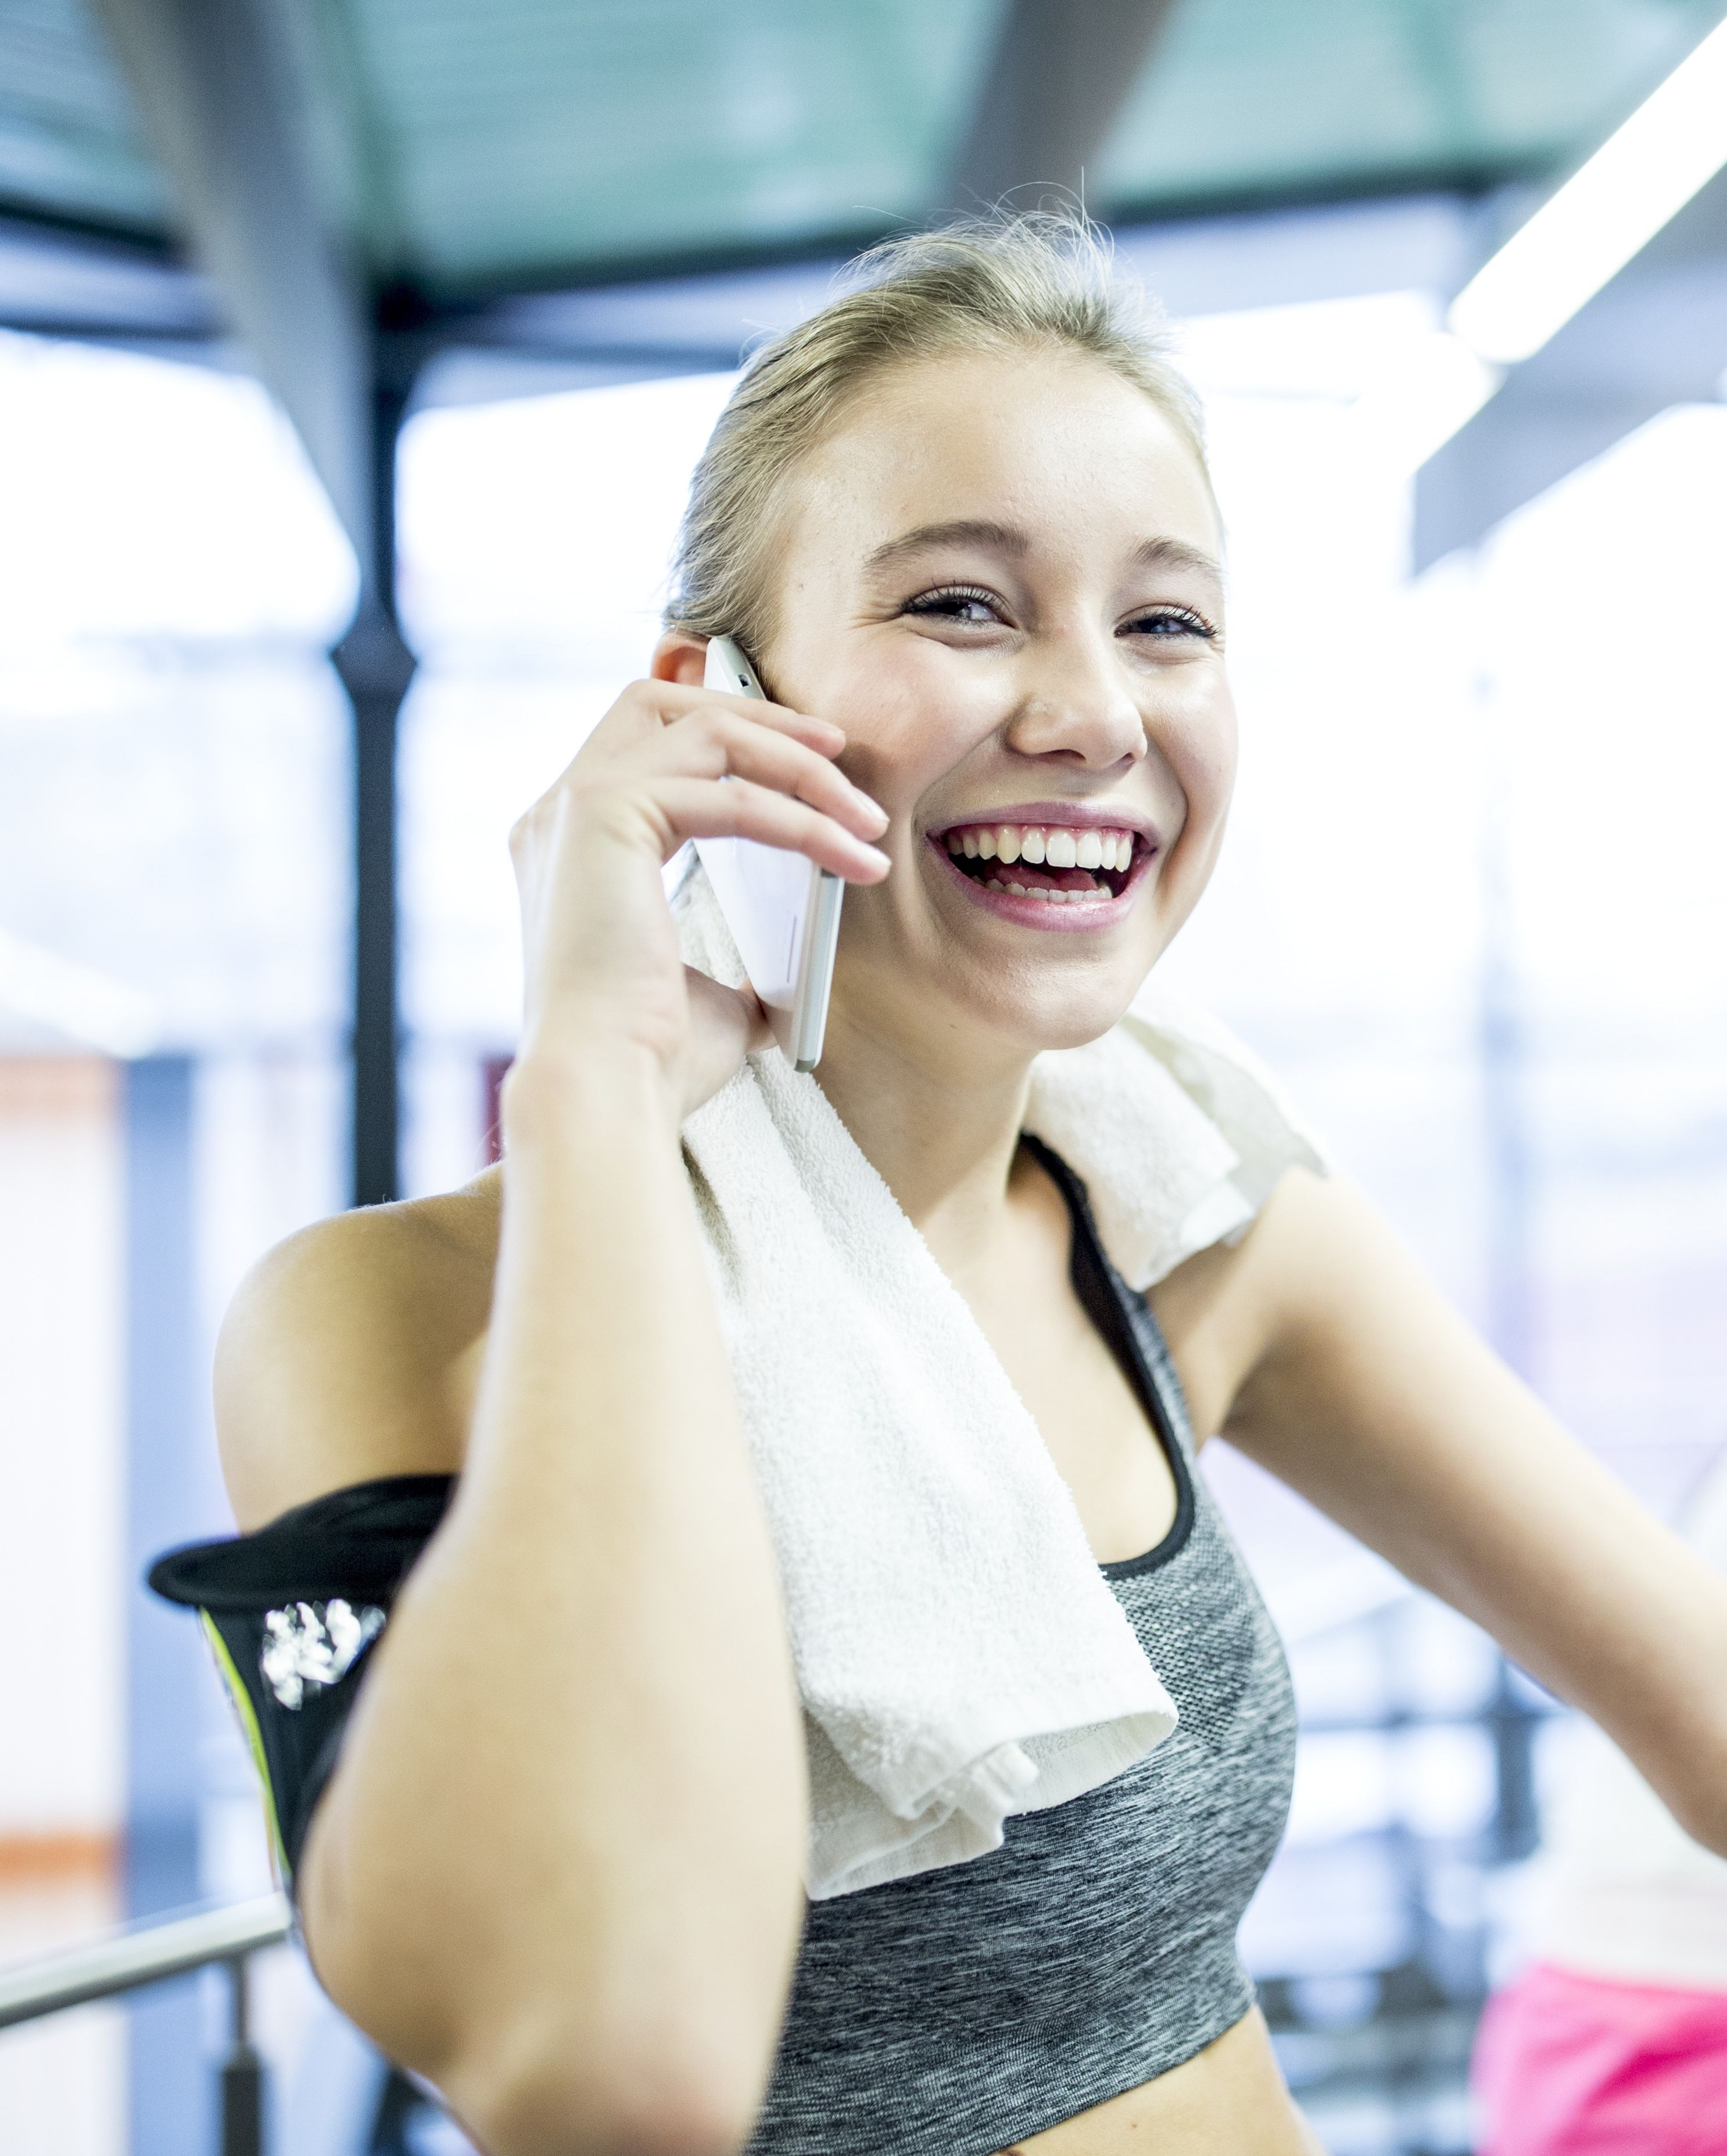 Don't make phone calls. Not only does chatting on the phone during your workout distract you from what you're doing, but it's also totally annoying.